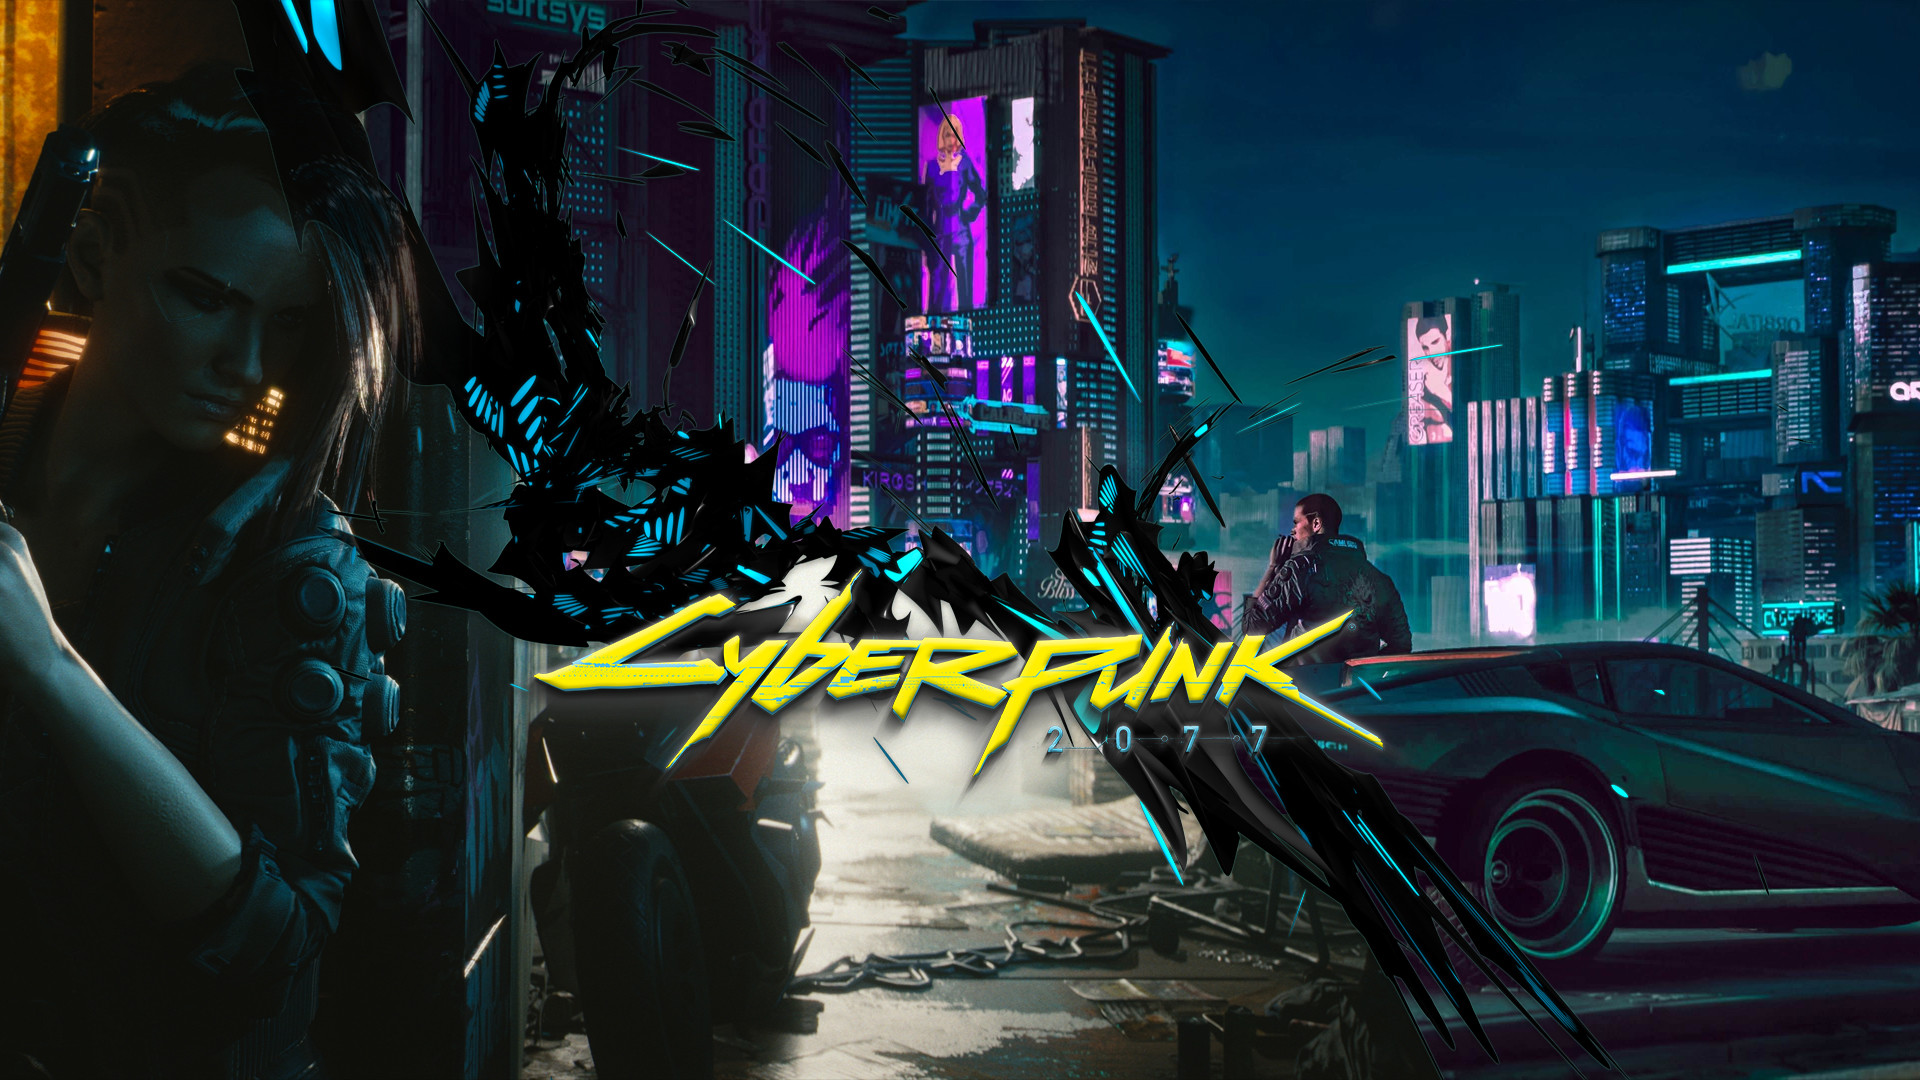 Cyberpunk 2077 Wallpaper 2560x1440 Posted By Michelle Sellers